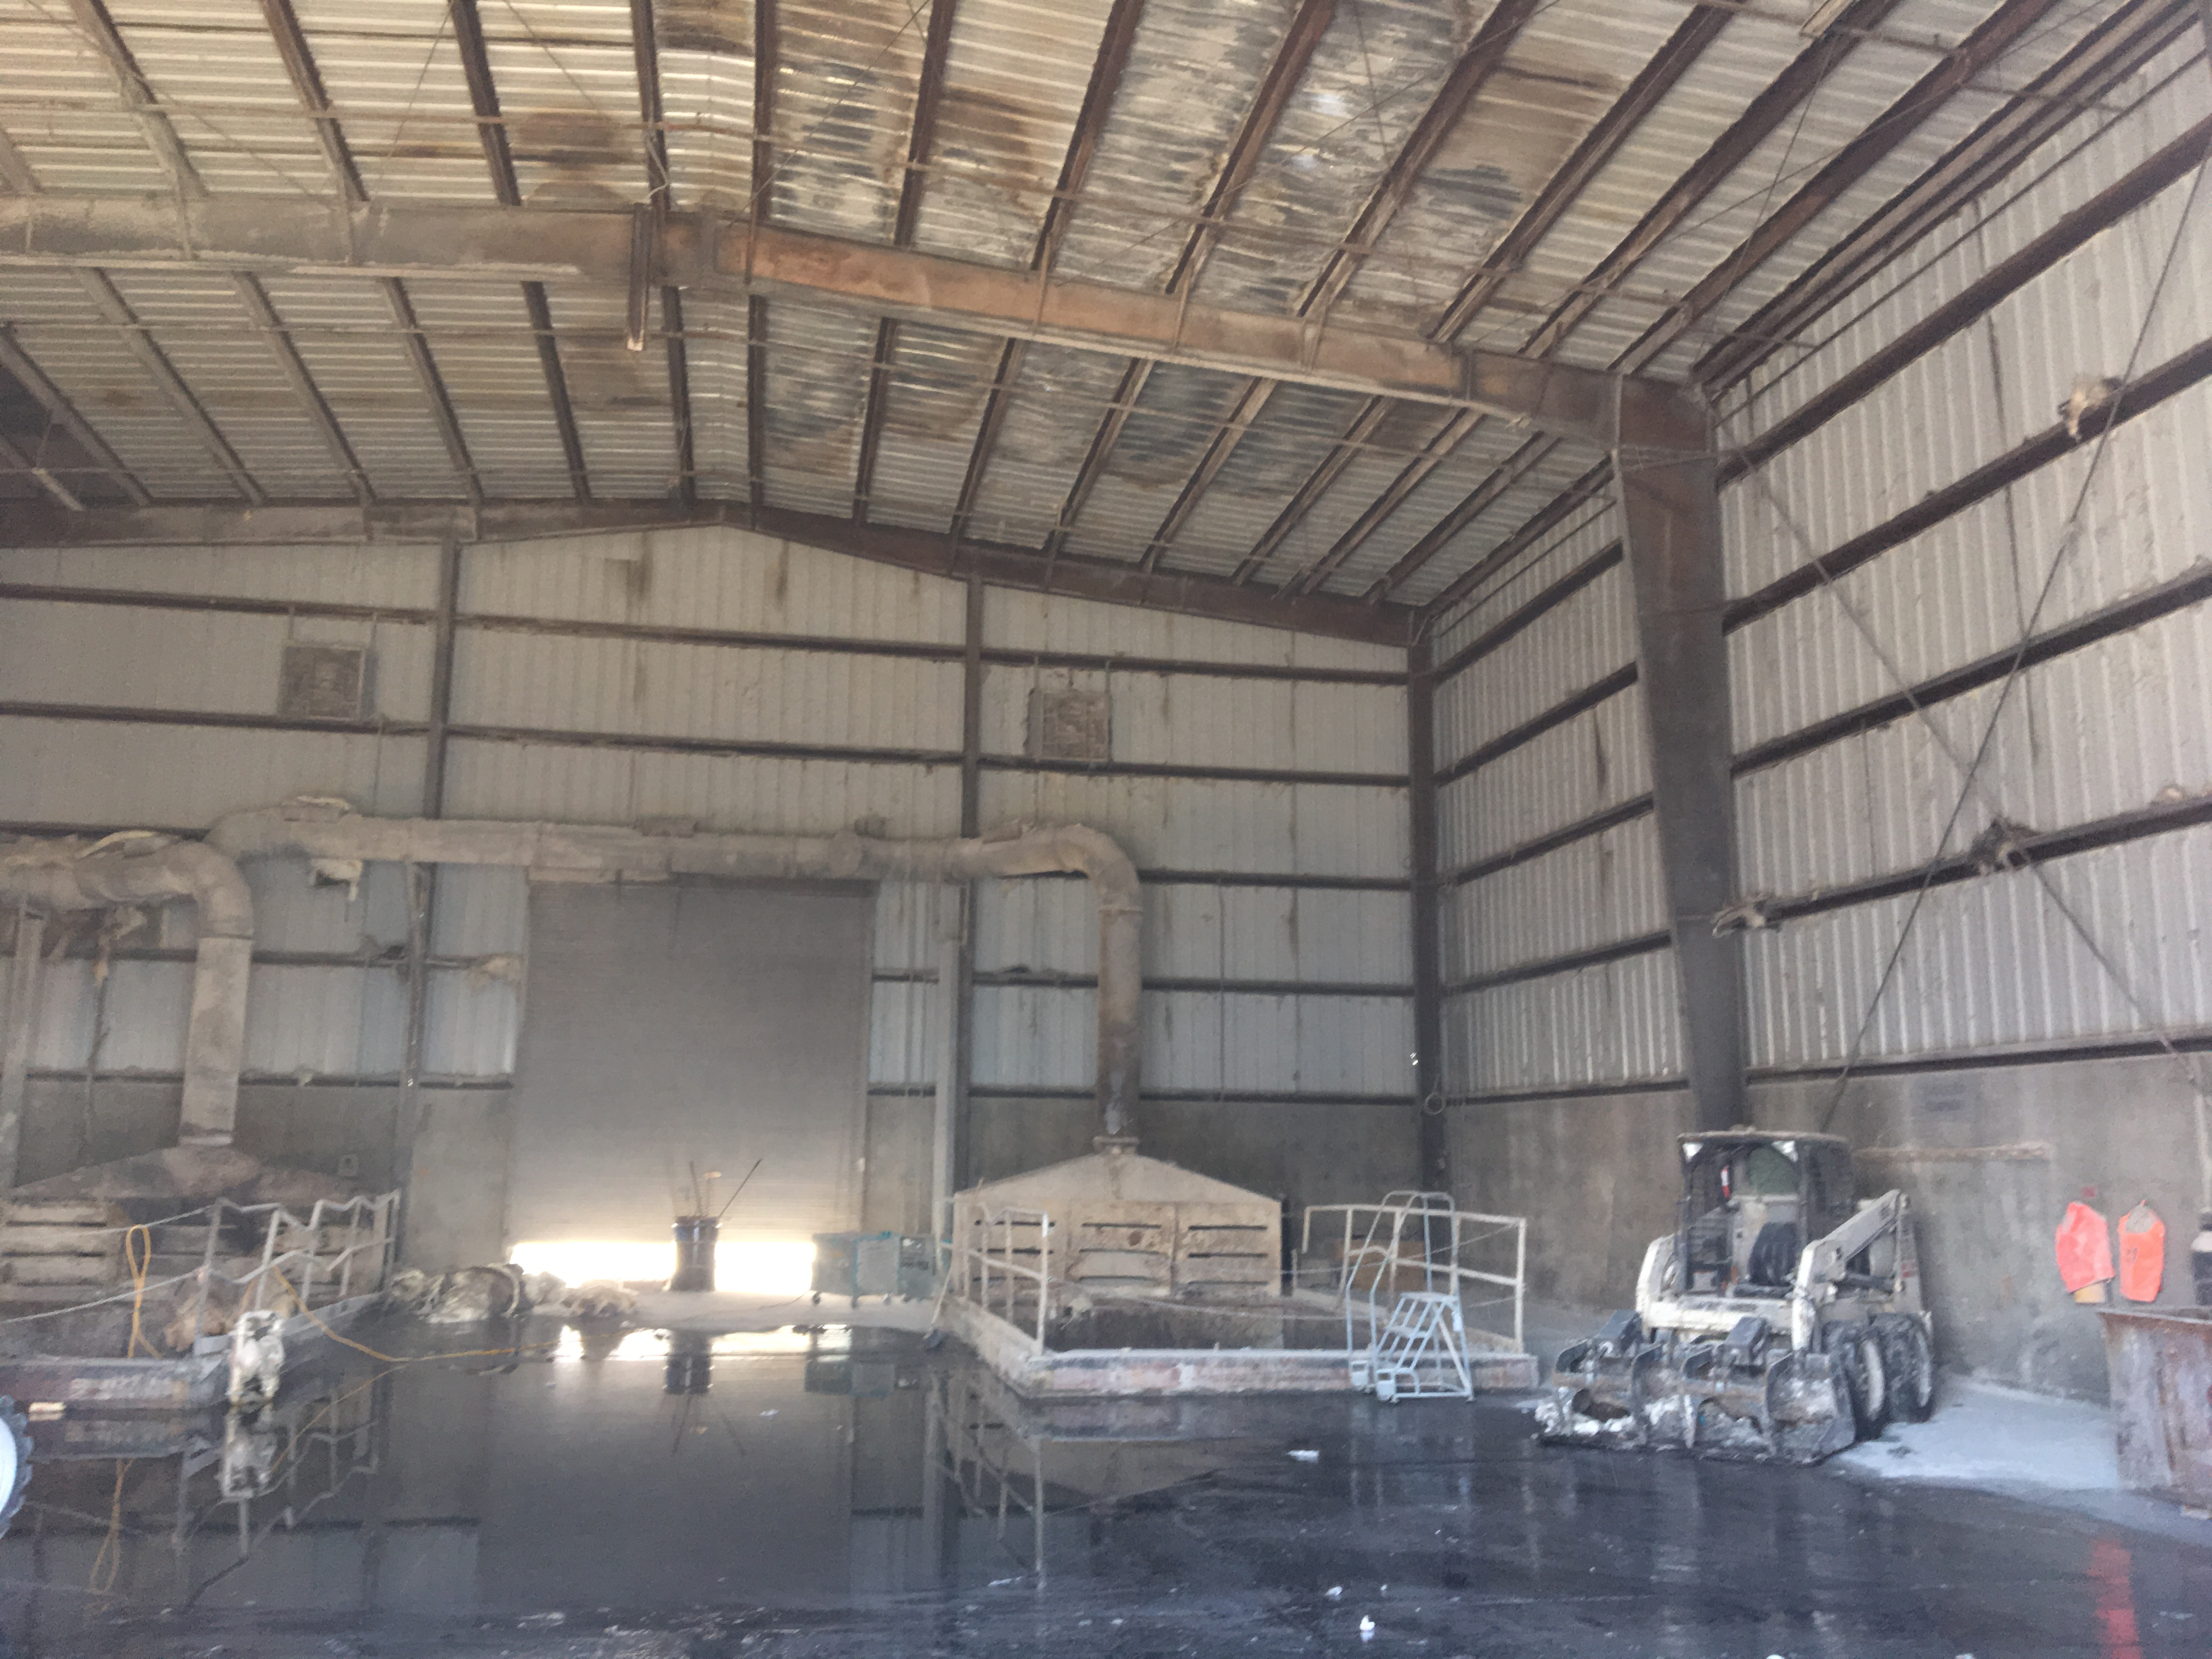 Interior of a Stericycle warehouse after dangerous 2019 fire.